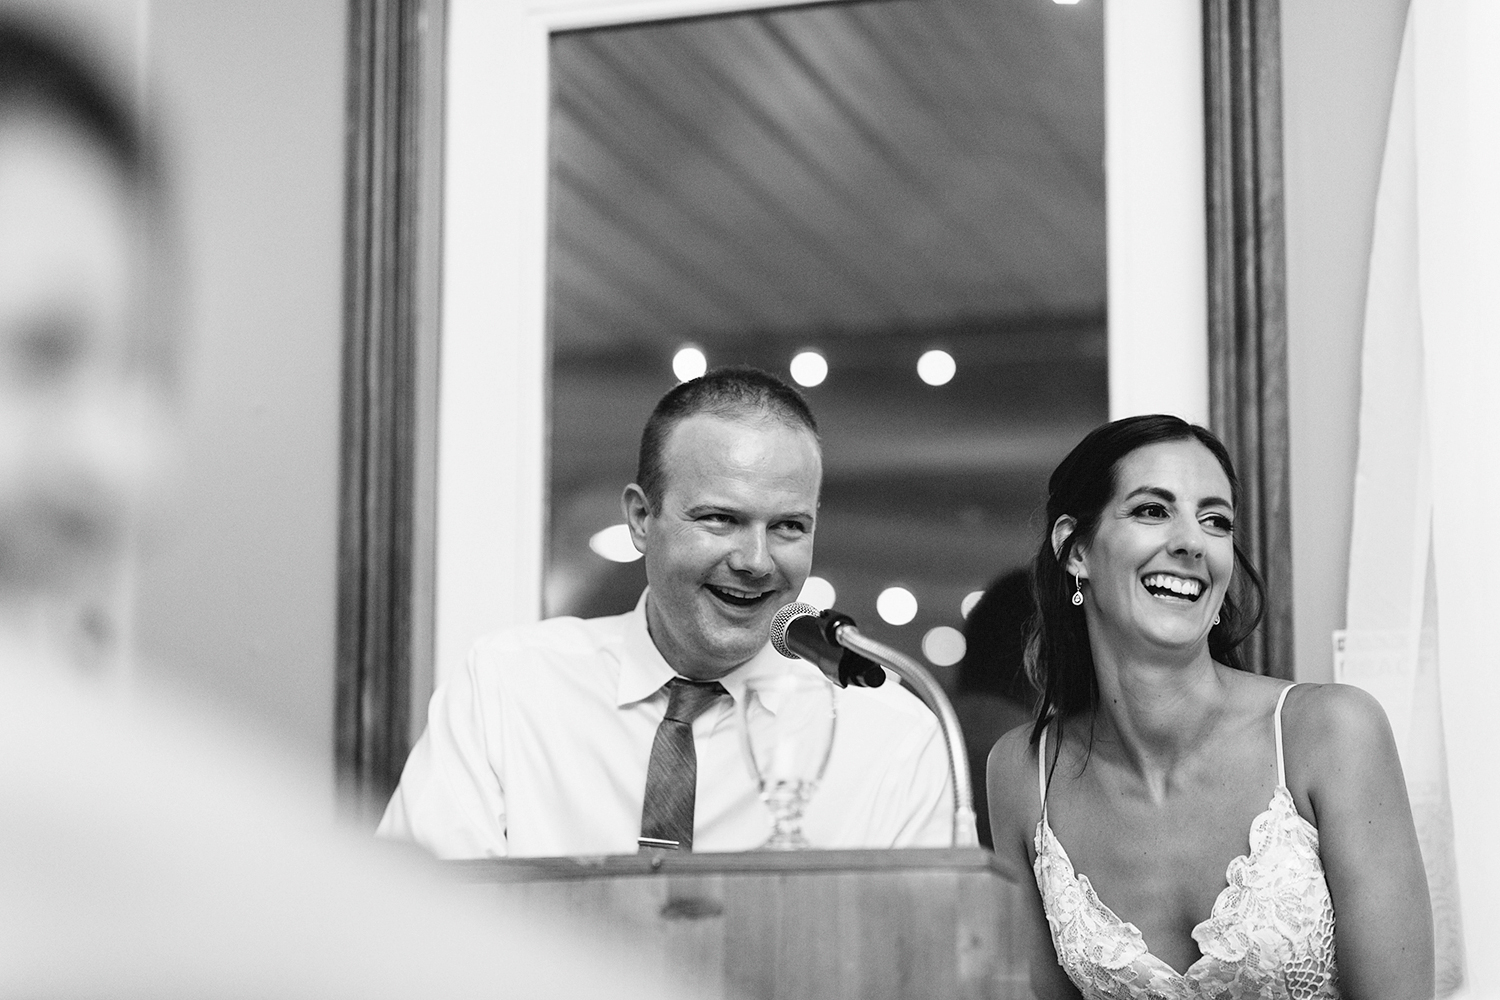 bride-and-groom-speech-during-reception-At-Eganridge-Resort-Venue-Muskoka-Ontario-Wedding-Photography-by-Ryanne-Hollies-Photography-Toronto-Documentary-Wedding-Photographer.jpg